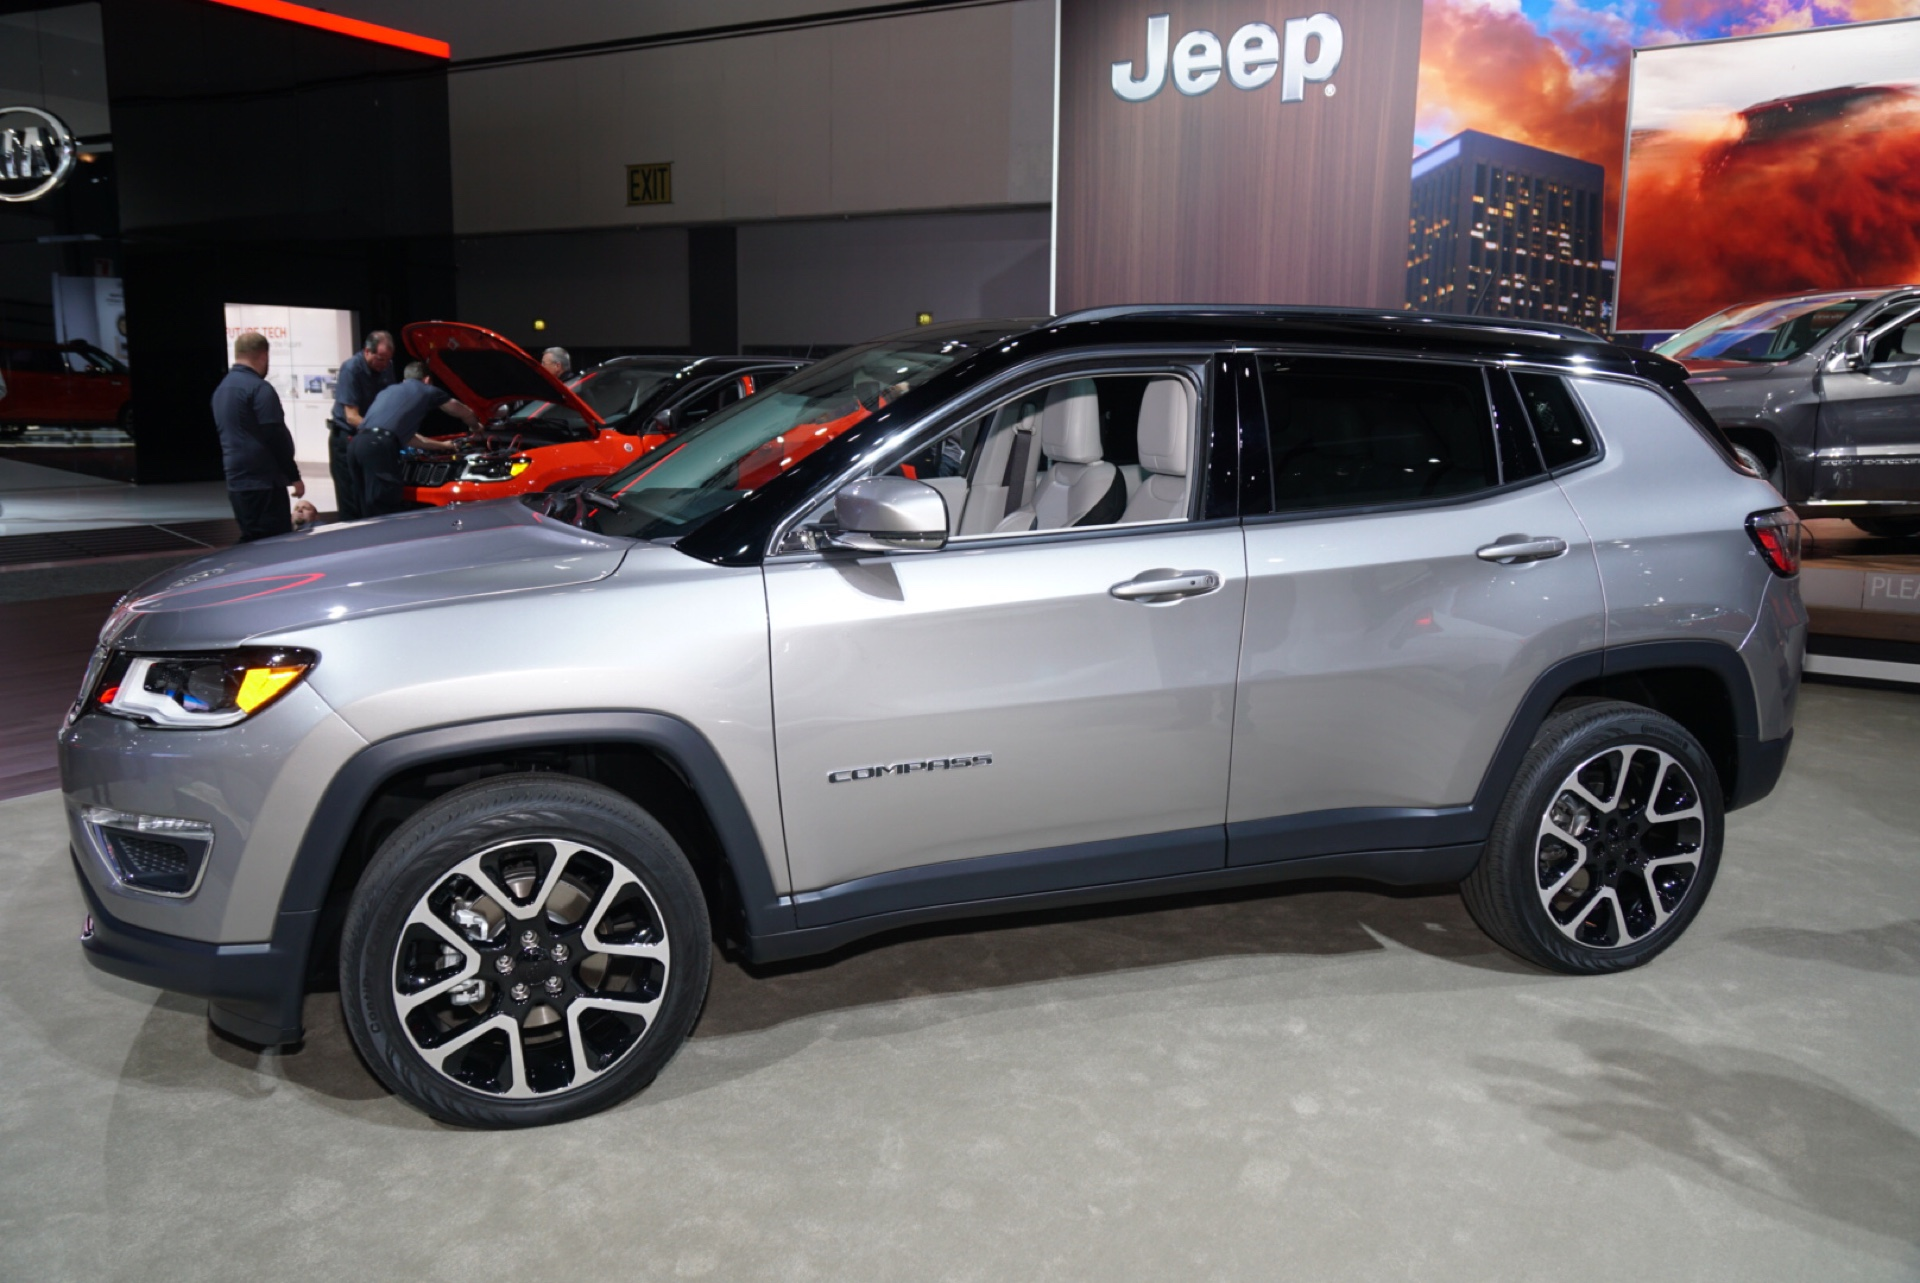 2017 Jeep Compass video preview